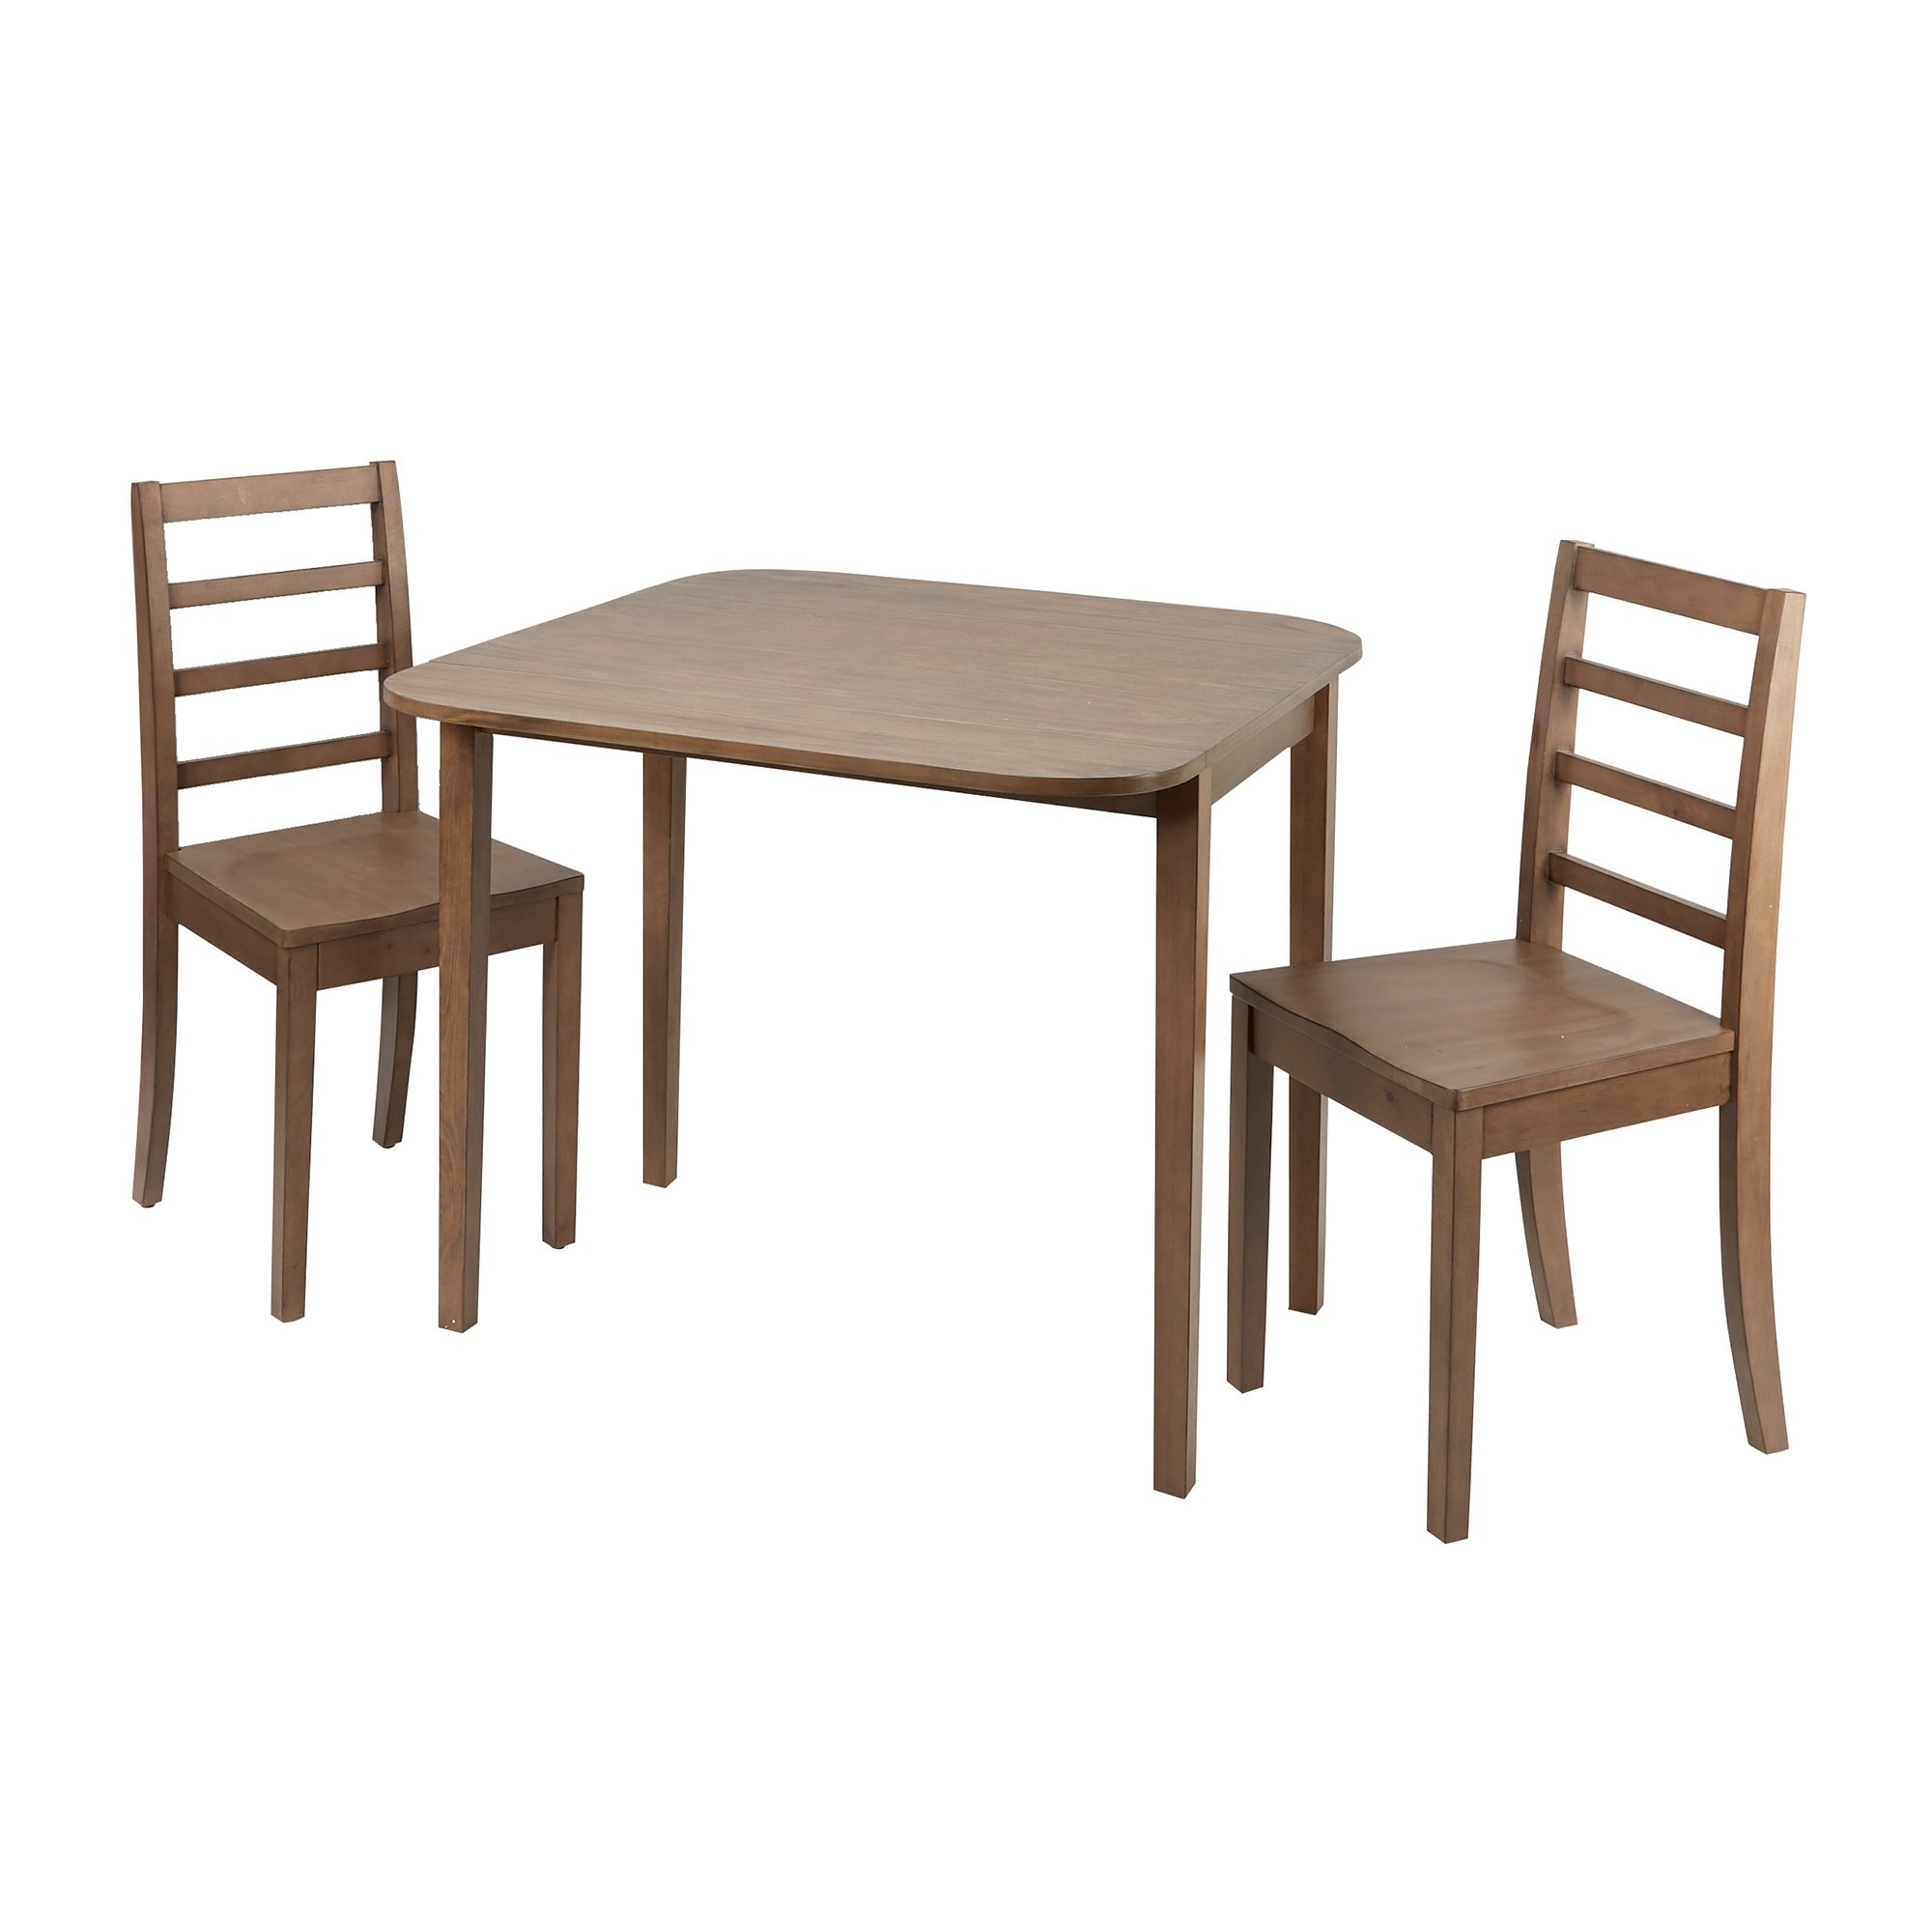 2020 Mason 3 Piece Drop Leaf Dining Set With Ladderback Chairs In Transitional 3 Piece Drop Leaf Casual Dining Tables Set (View 8 of 25)